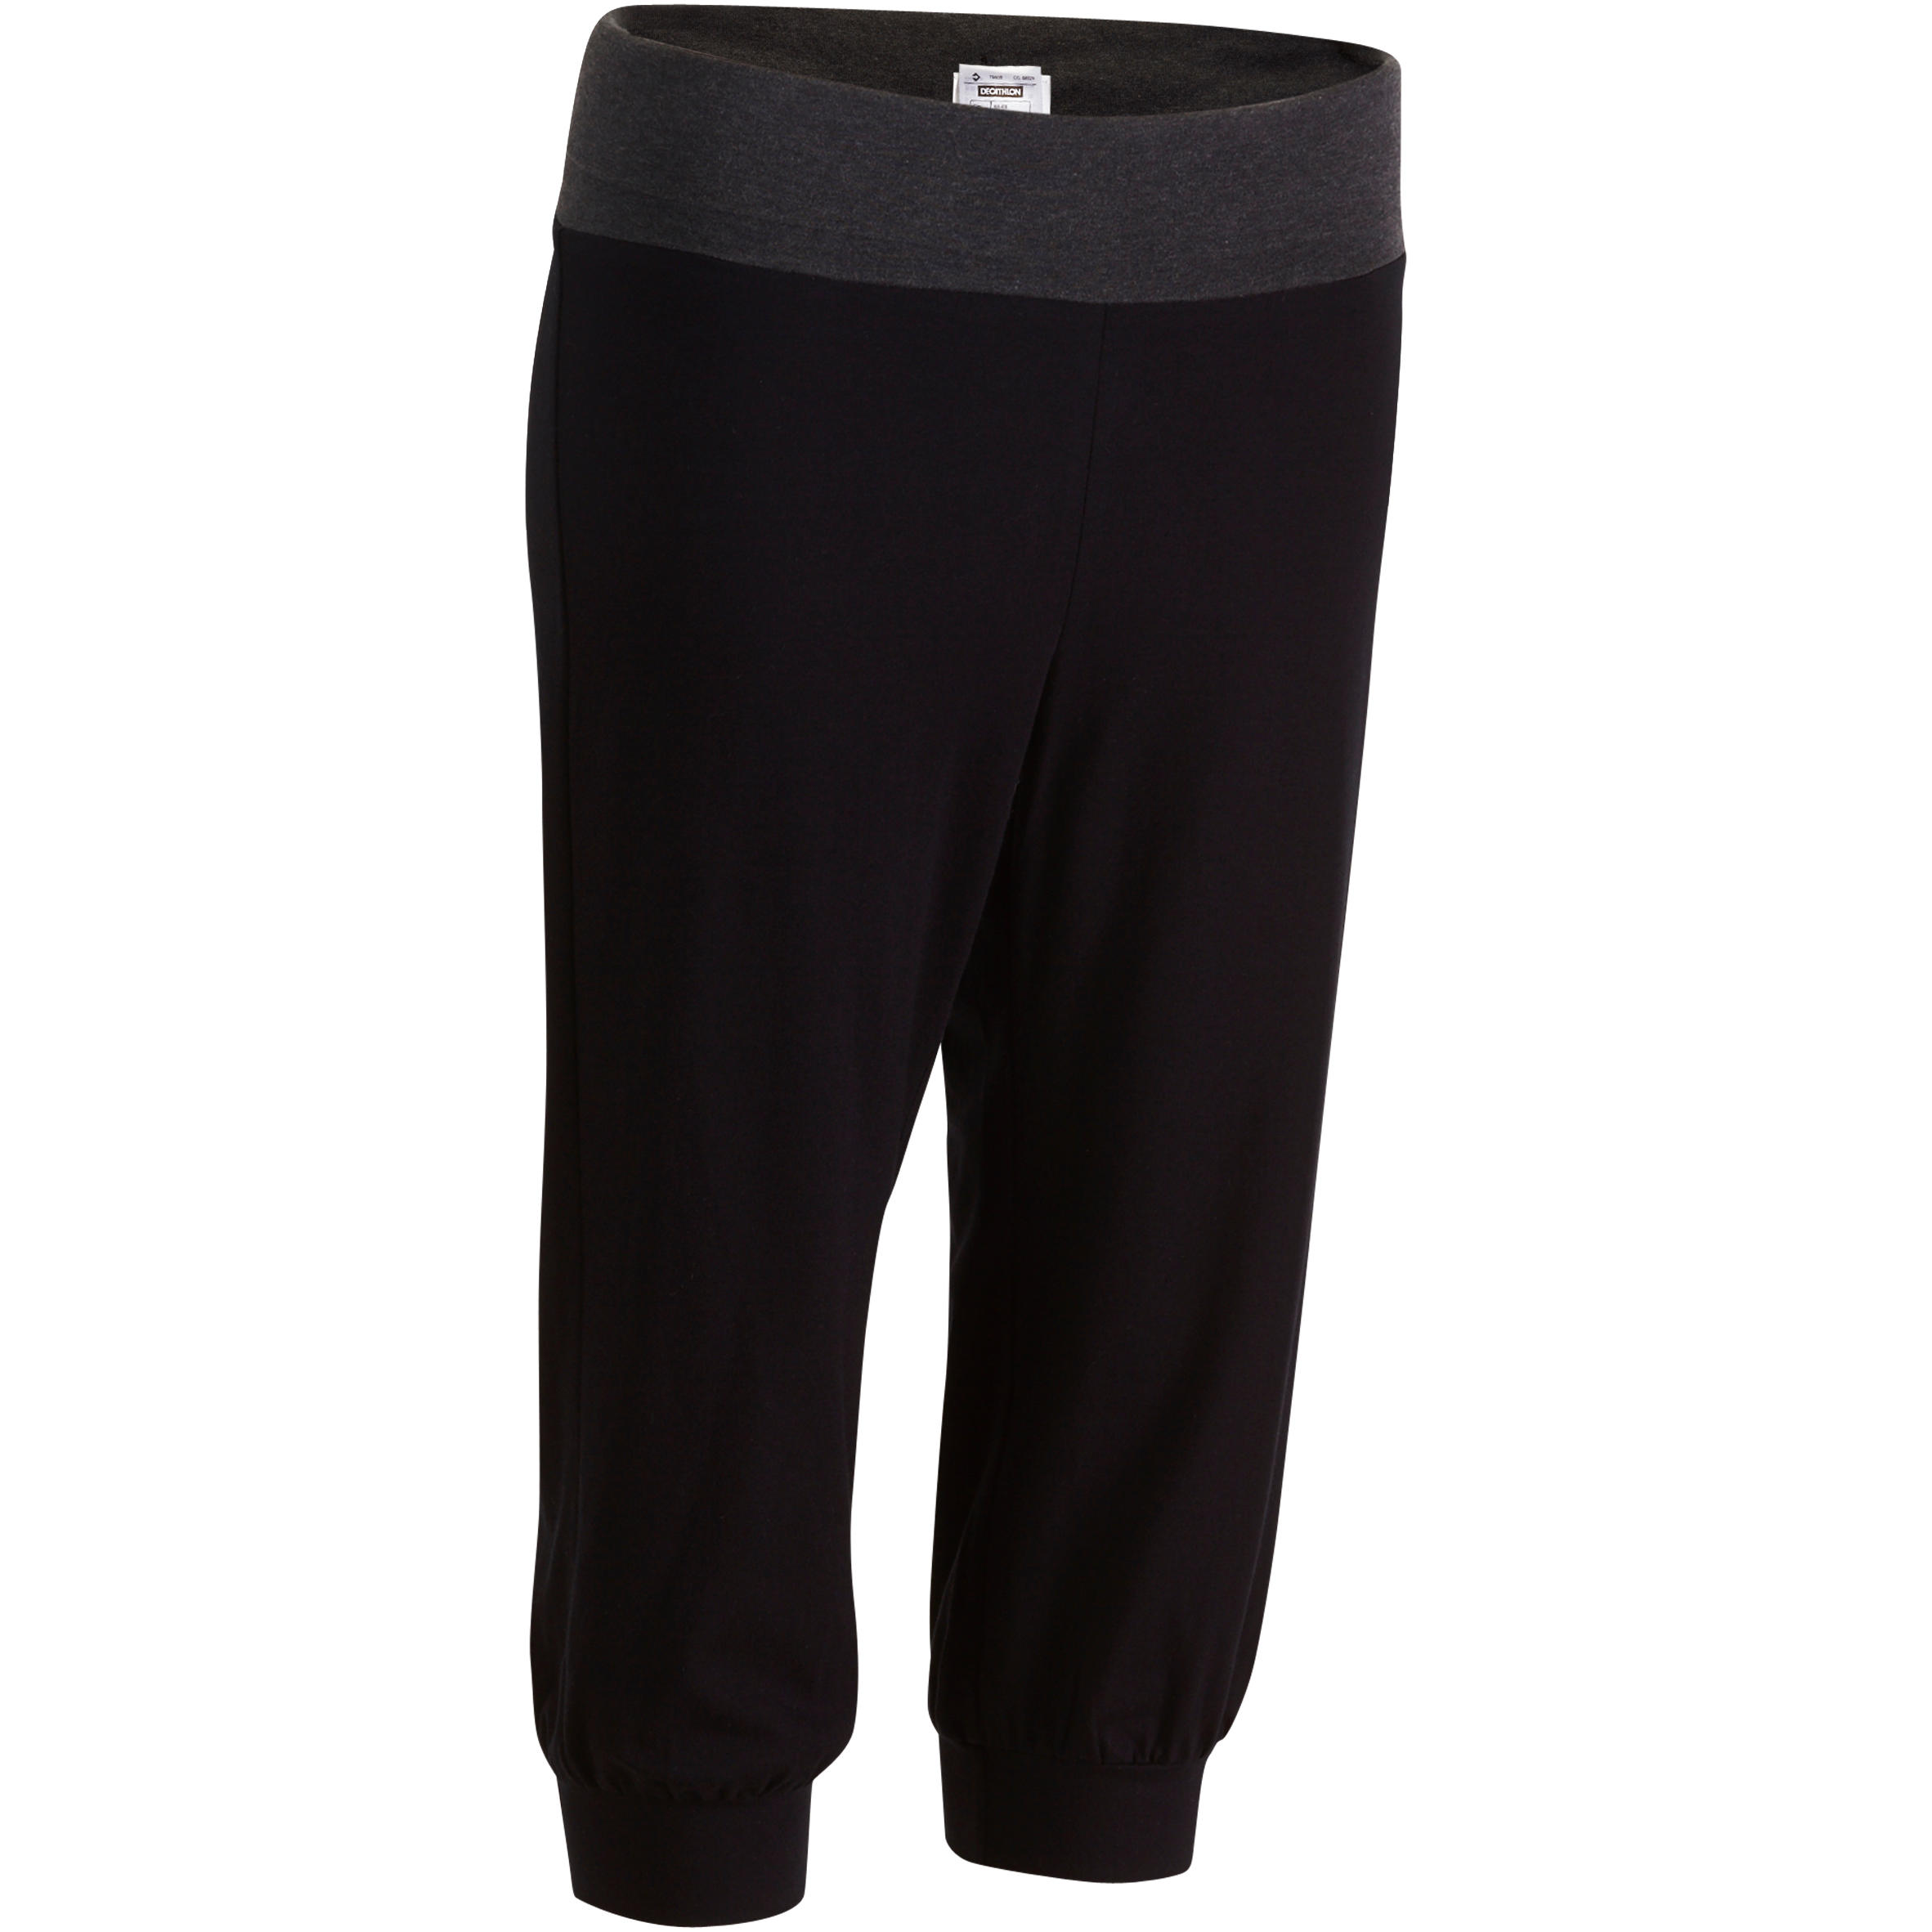 Women's Gentle Yoga Organic Cotton Cropped Bottoms - Black/Grey